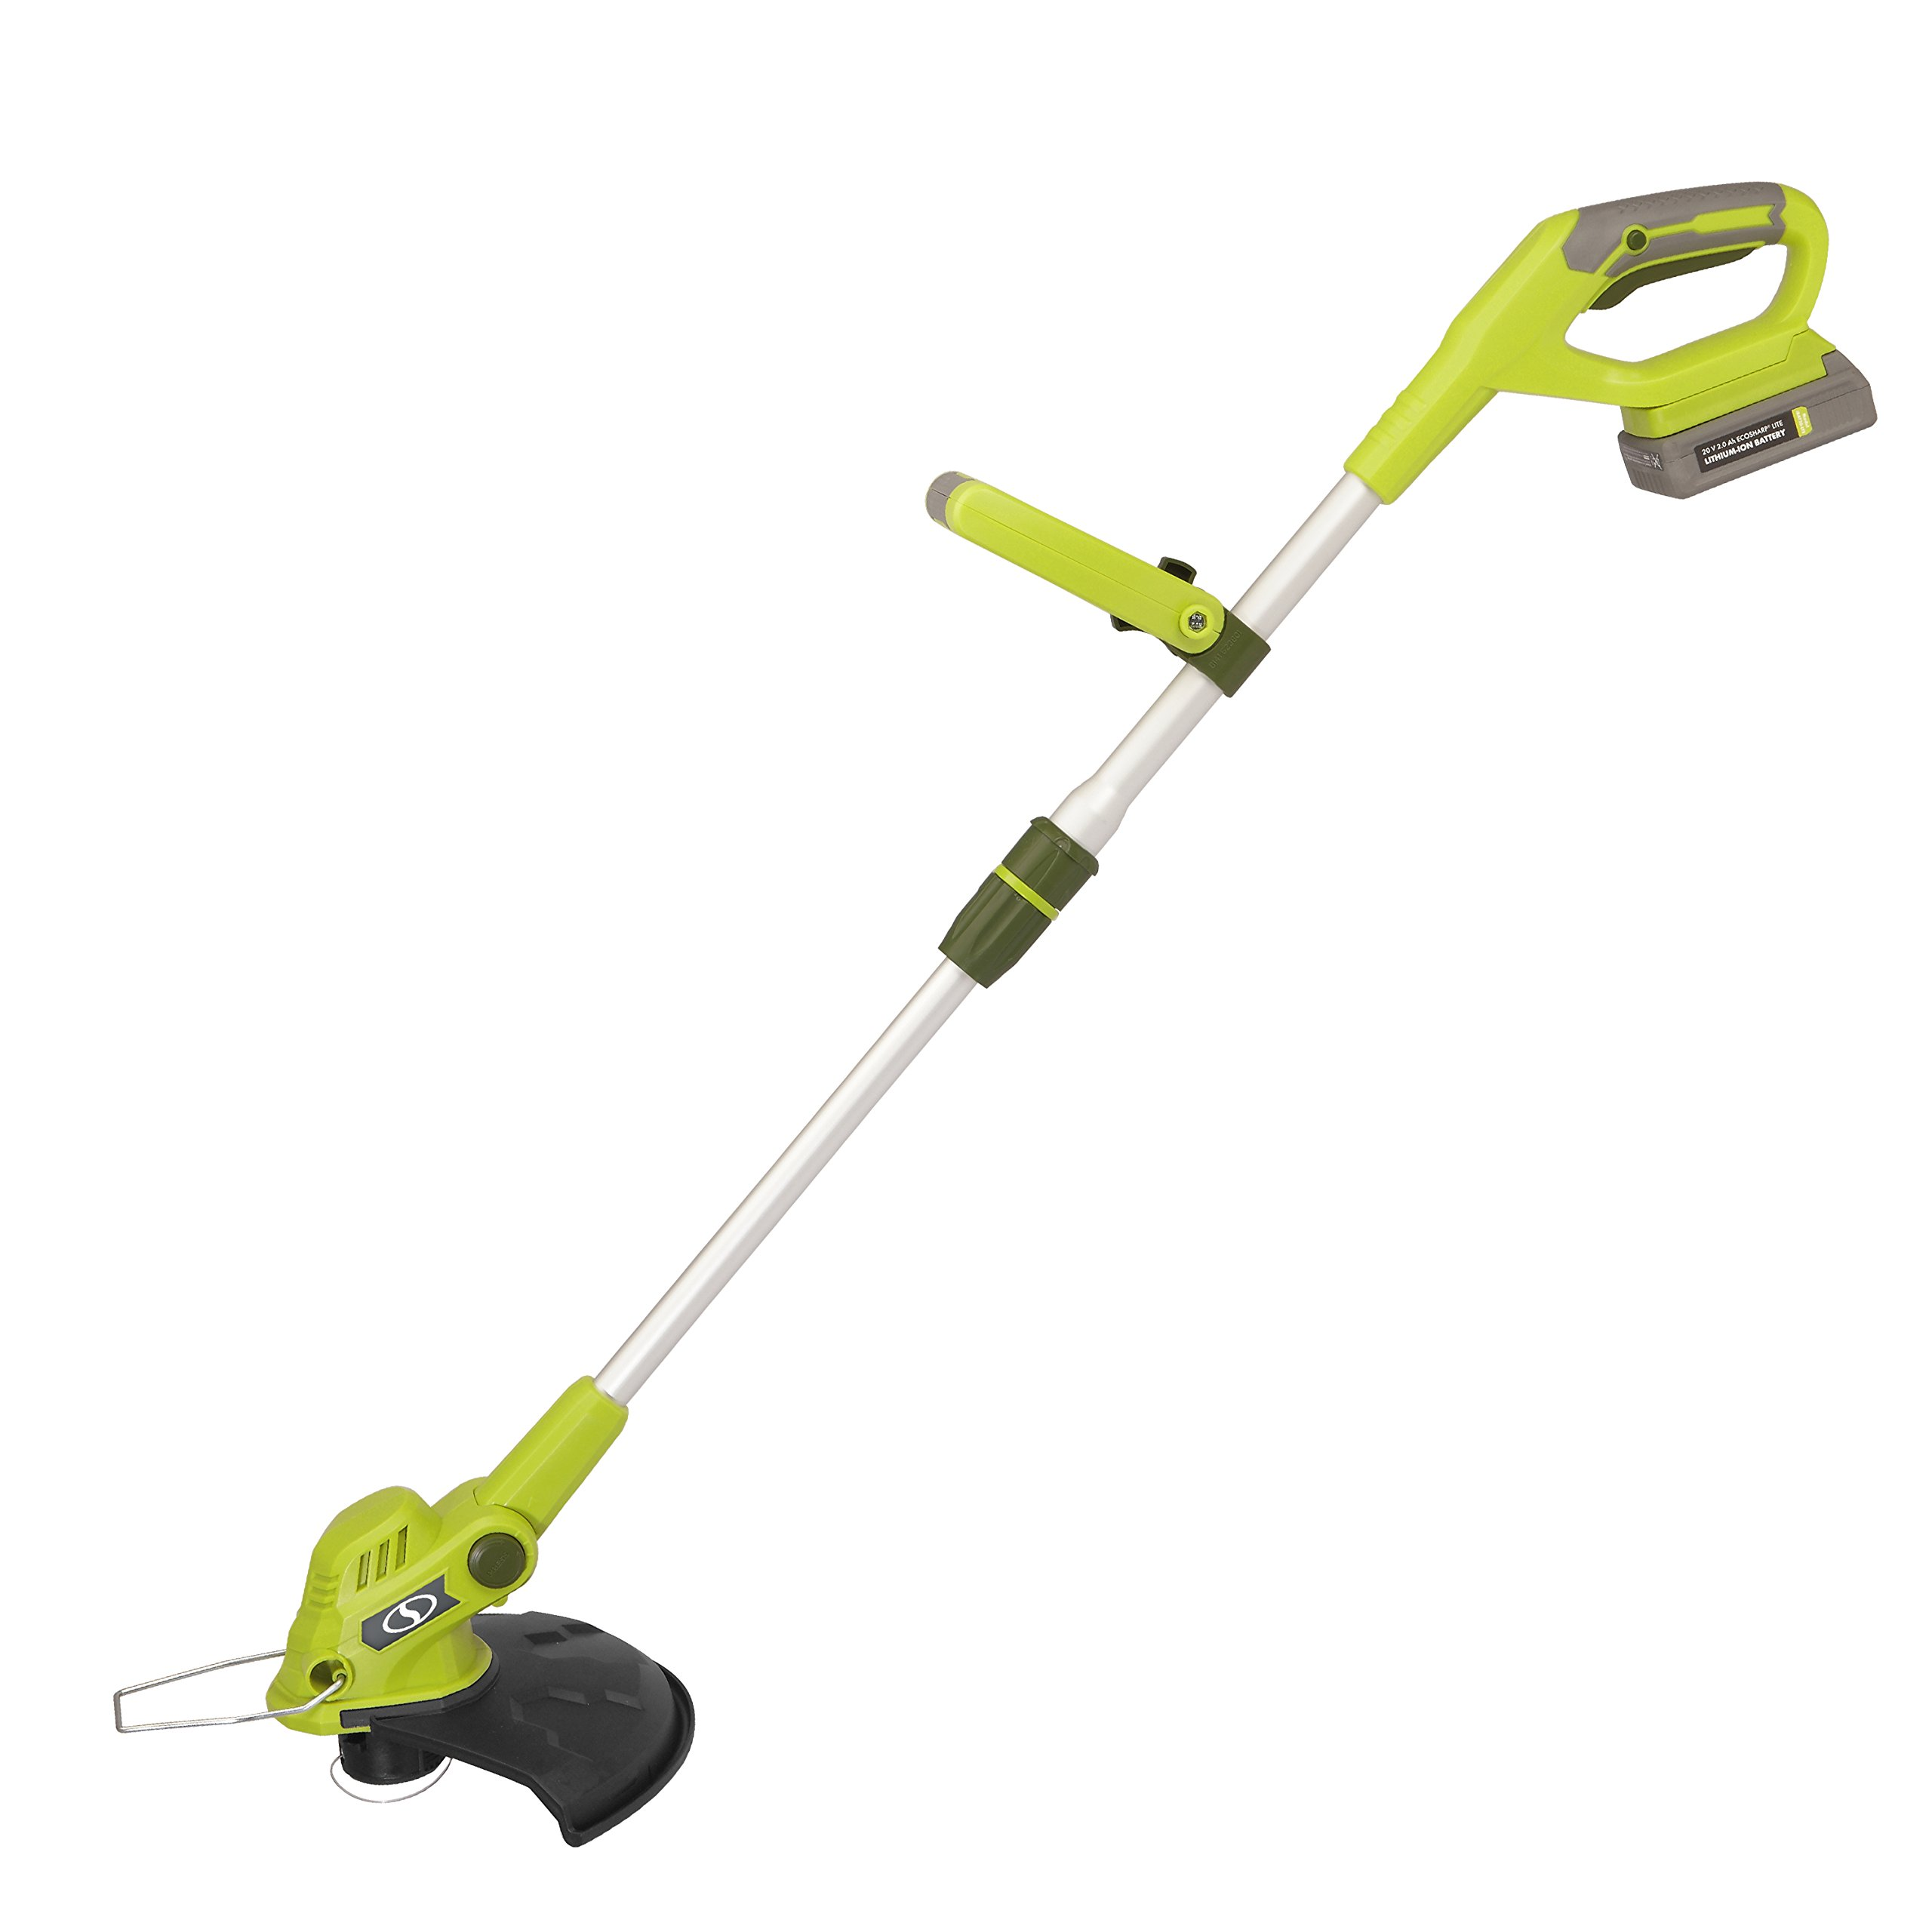 Sun Joe 20VIONLTE-ST11 Cordless Swath String Trimmer+Edger, Green